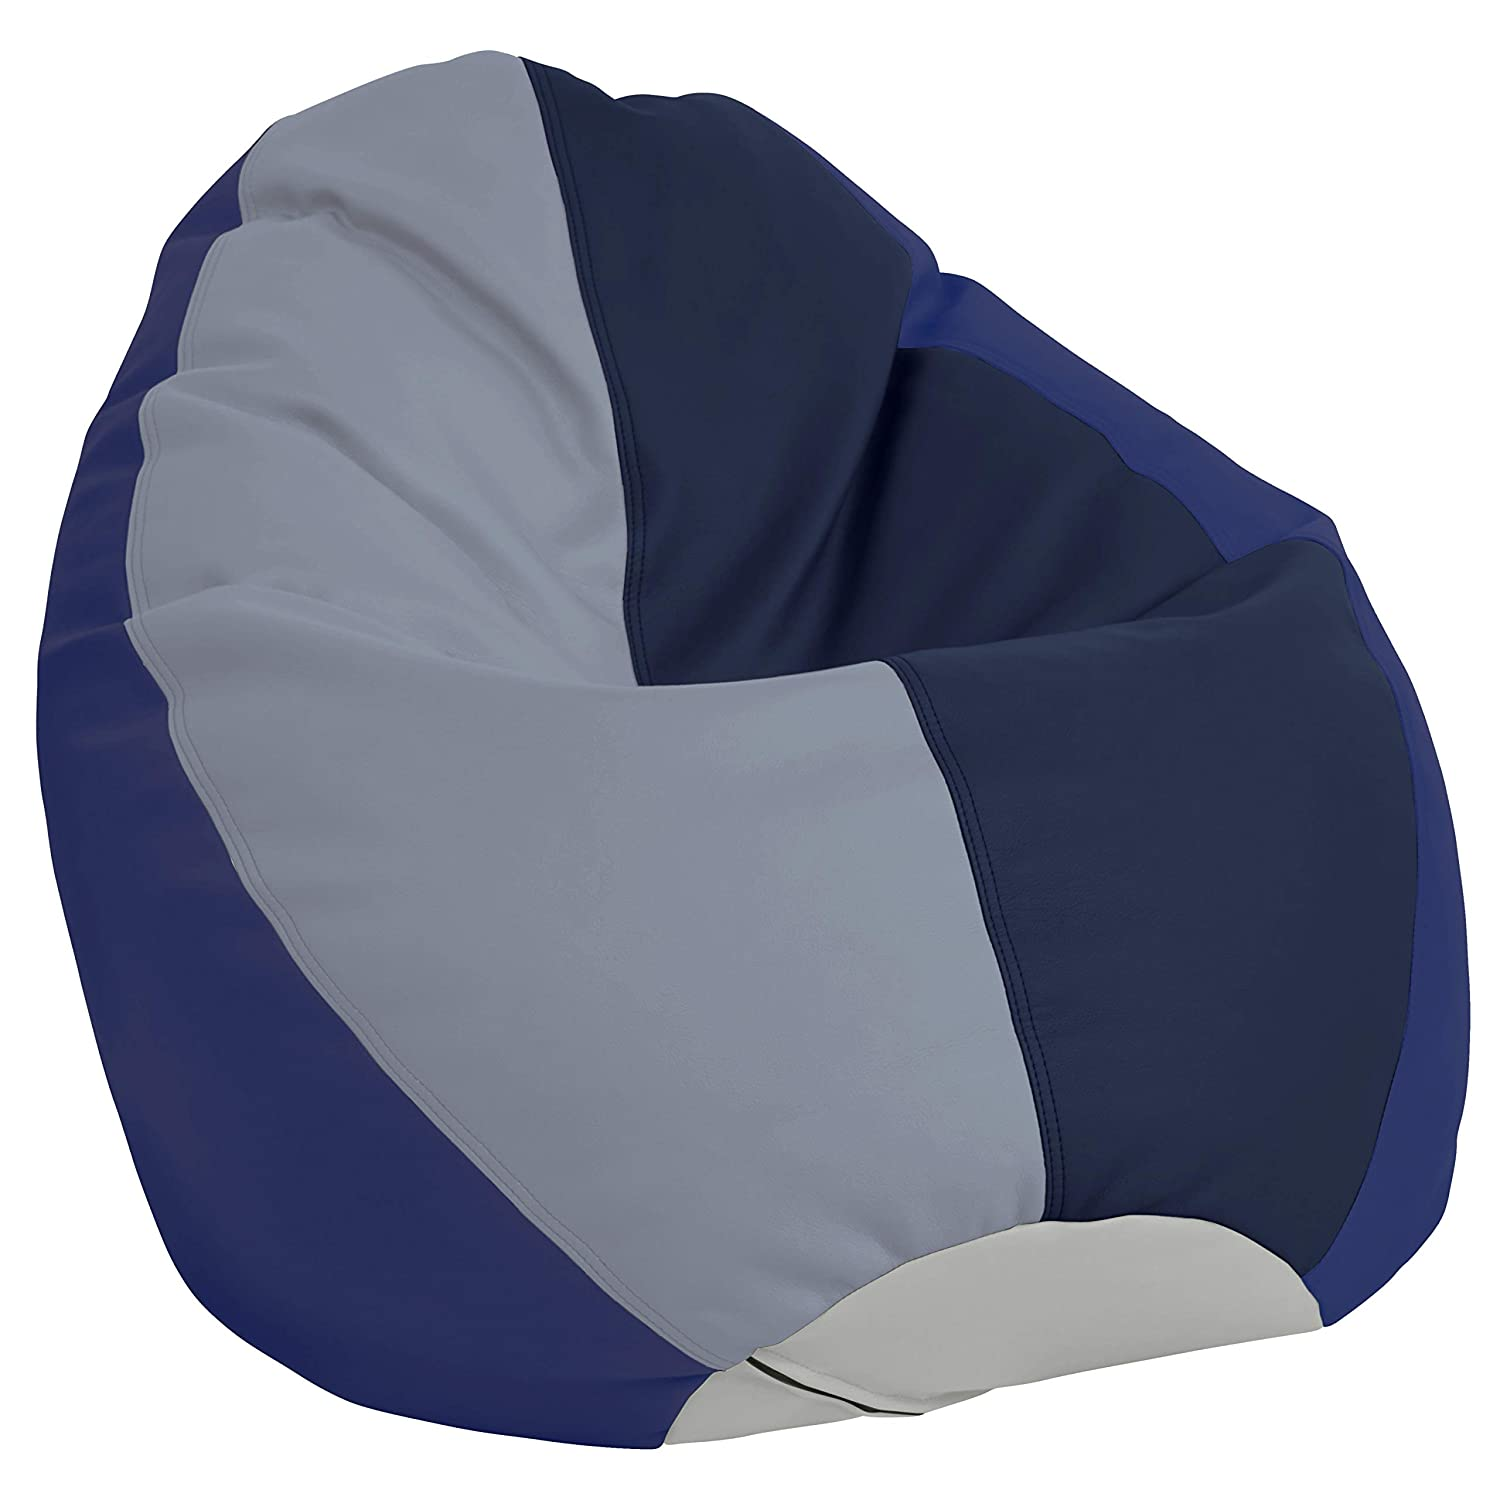 FDP SoftScape Dew Drop Bean Bag Chair with Supportive High-Back Design, for Kids, Teens and Adults, Alternative Seating for Dorms, Schools, Libraries, Daycares or Home- Navy/Powder Blue